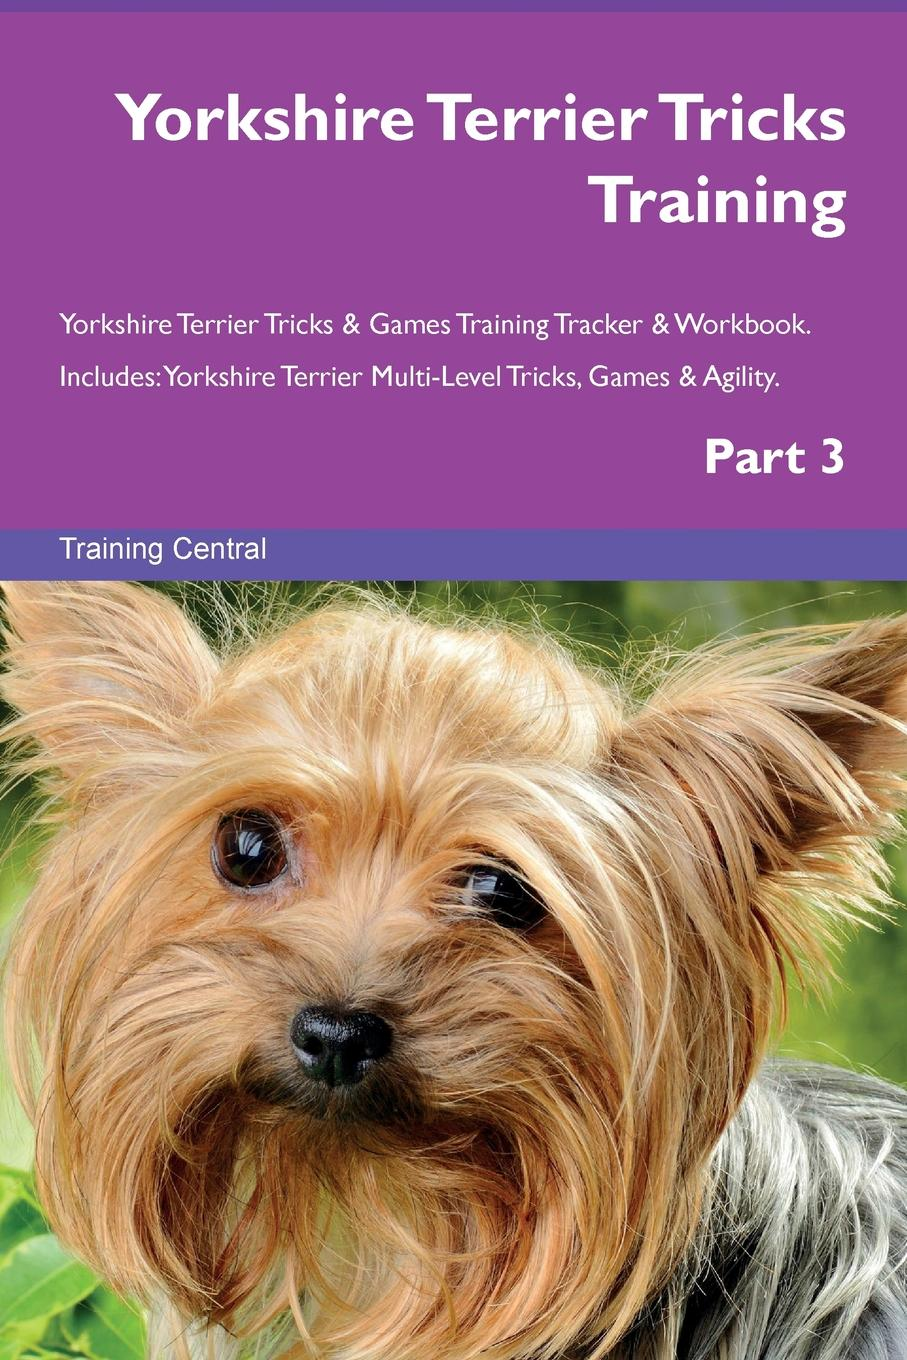 Training Central Yorkshire Terrier Tricks Training Yorkshire Terrier Tricks . Games Training Tracker . Workbook. Includes. Yorkshire Terrier Multi-Level Tricks, Games . Agility. Part 3 this book loves you